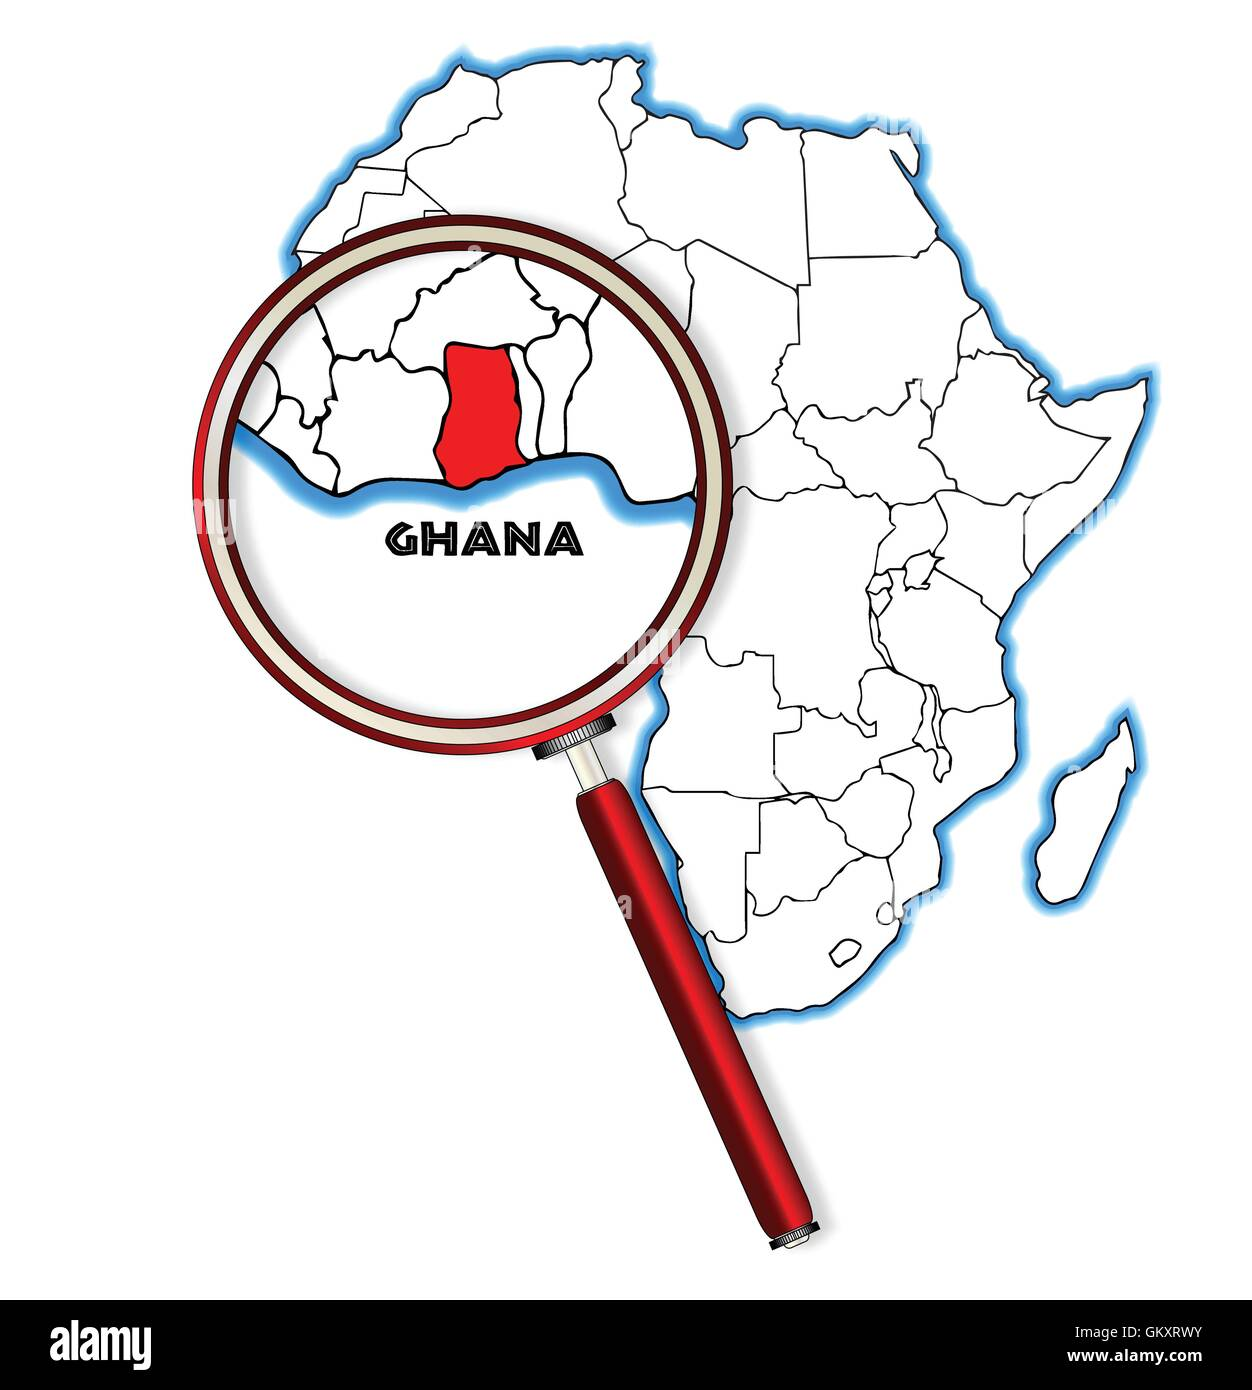 Ghana Under A Magnifying Glass - Stock Vector